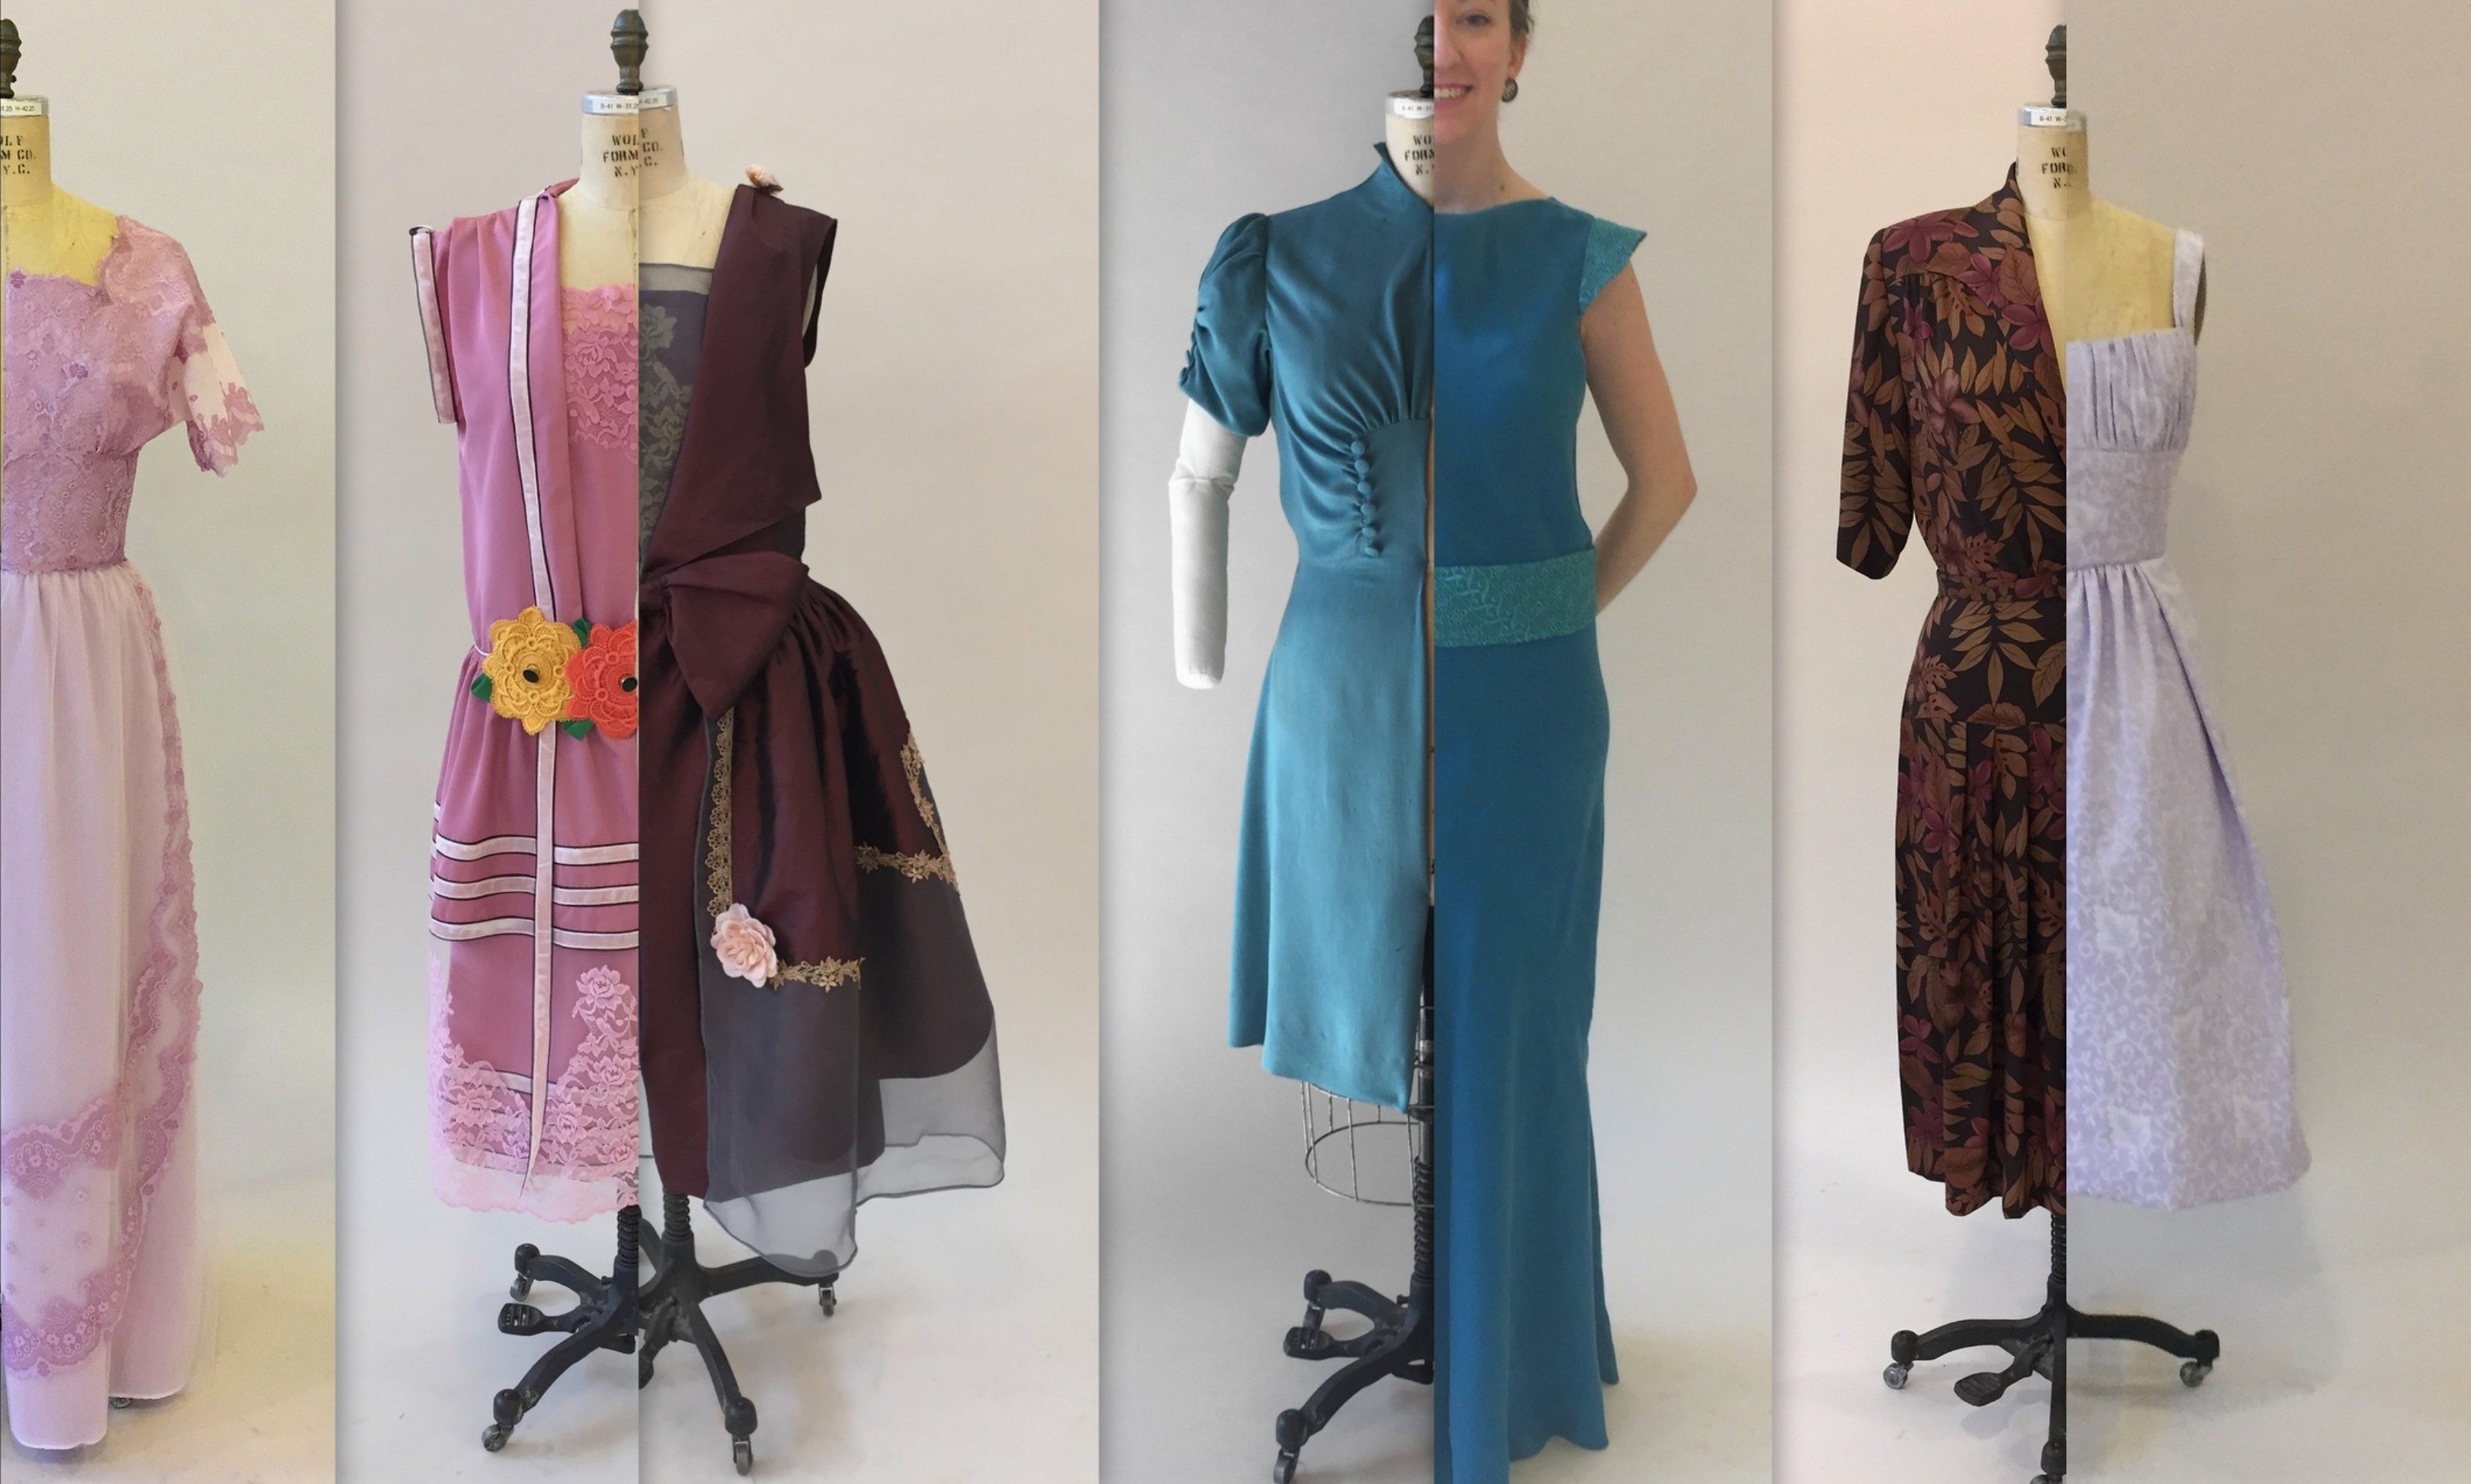 1910 - 1950s Day and Evening Dresses